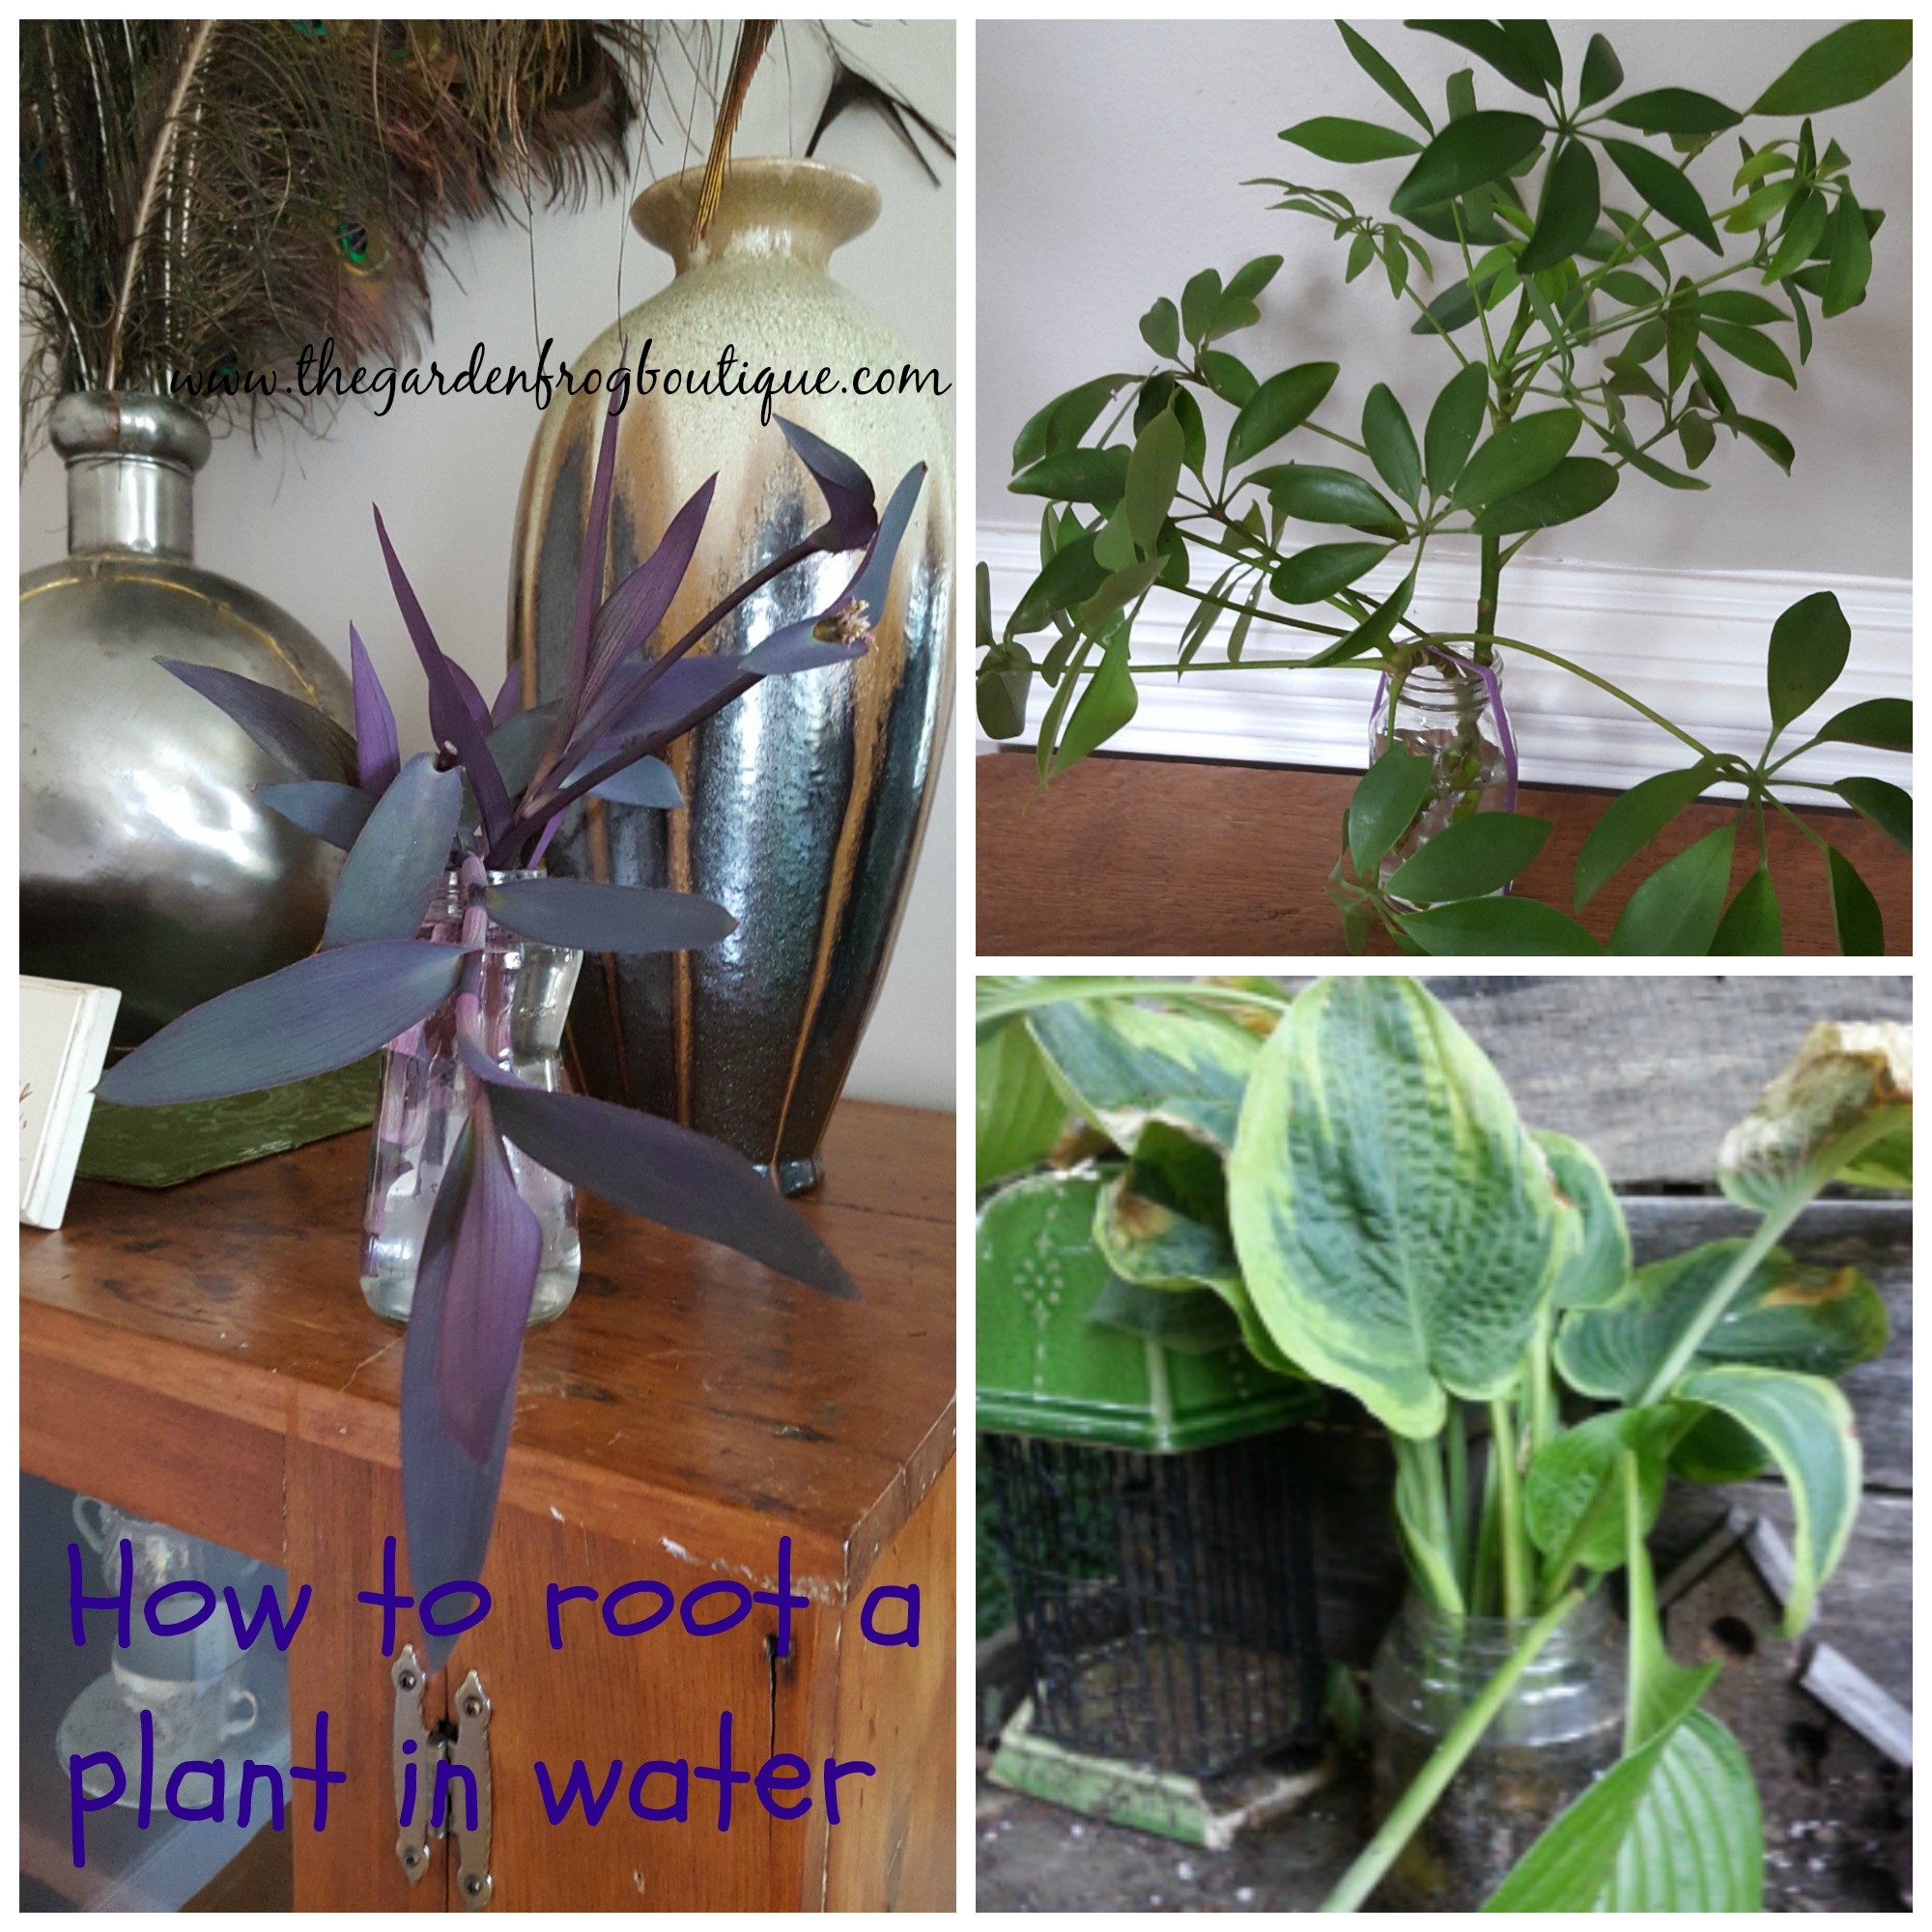 How To Root A Plant In Water The Garden Frog Boutique